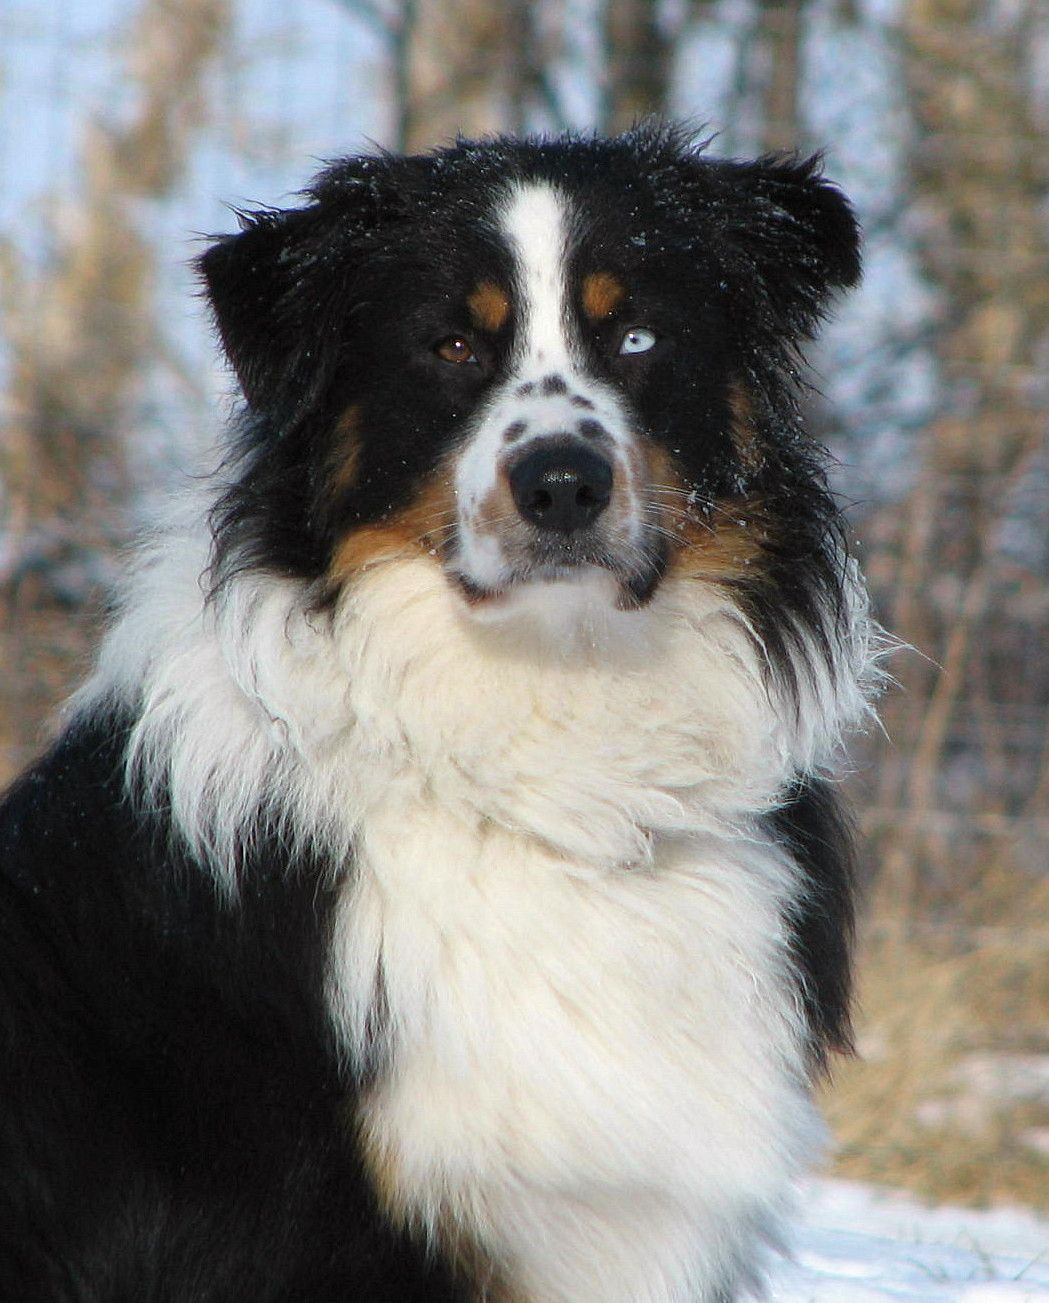 Bernese Mountain Dog Australian Shepherd Mix For Sale : bernese, mountain, australian, shepherd, Eyes,, Pigment,, Markings, Unique, Breeds,, Hybrid